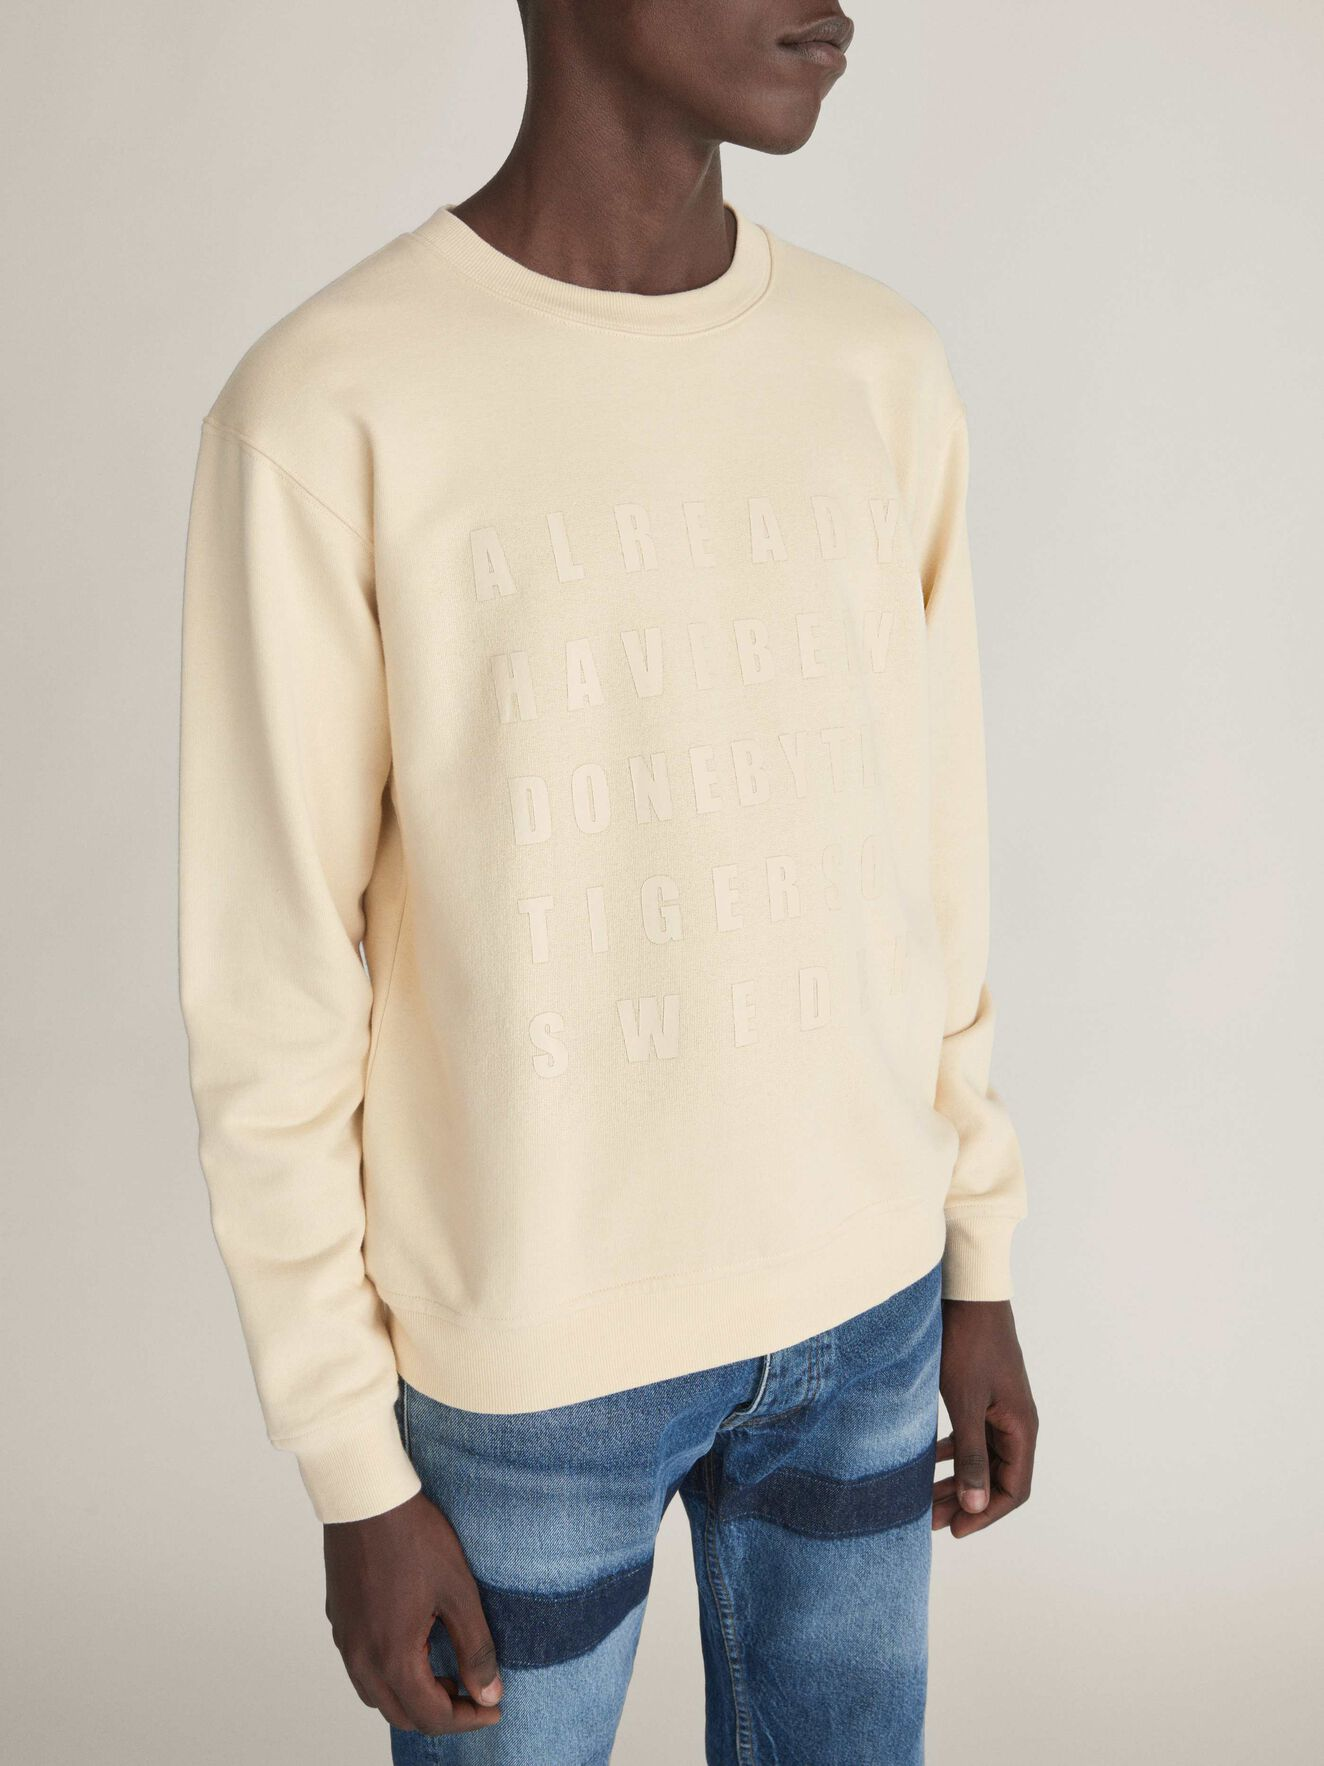 Tana Sweatshirt in Curd from Tiger of Sweden